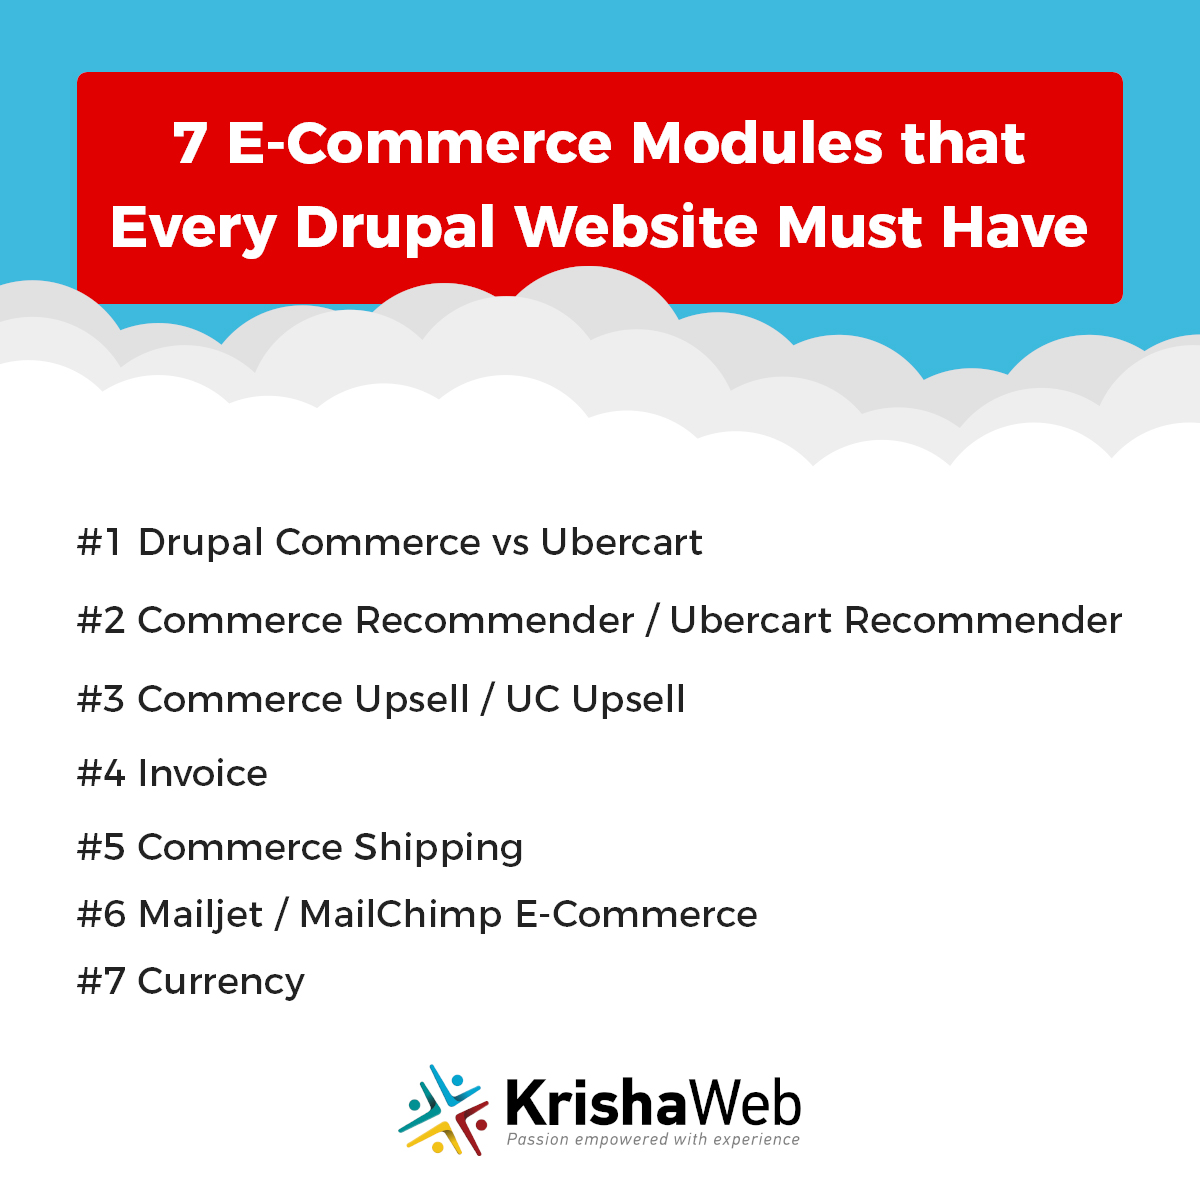 7 E-Commerce Modules that Every Drupal Website Must Have